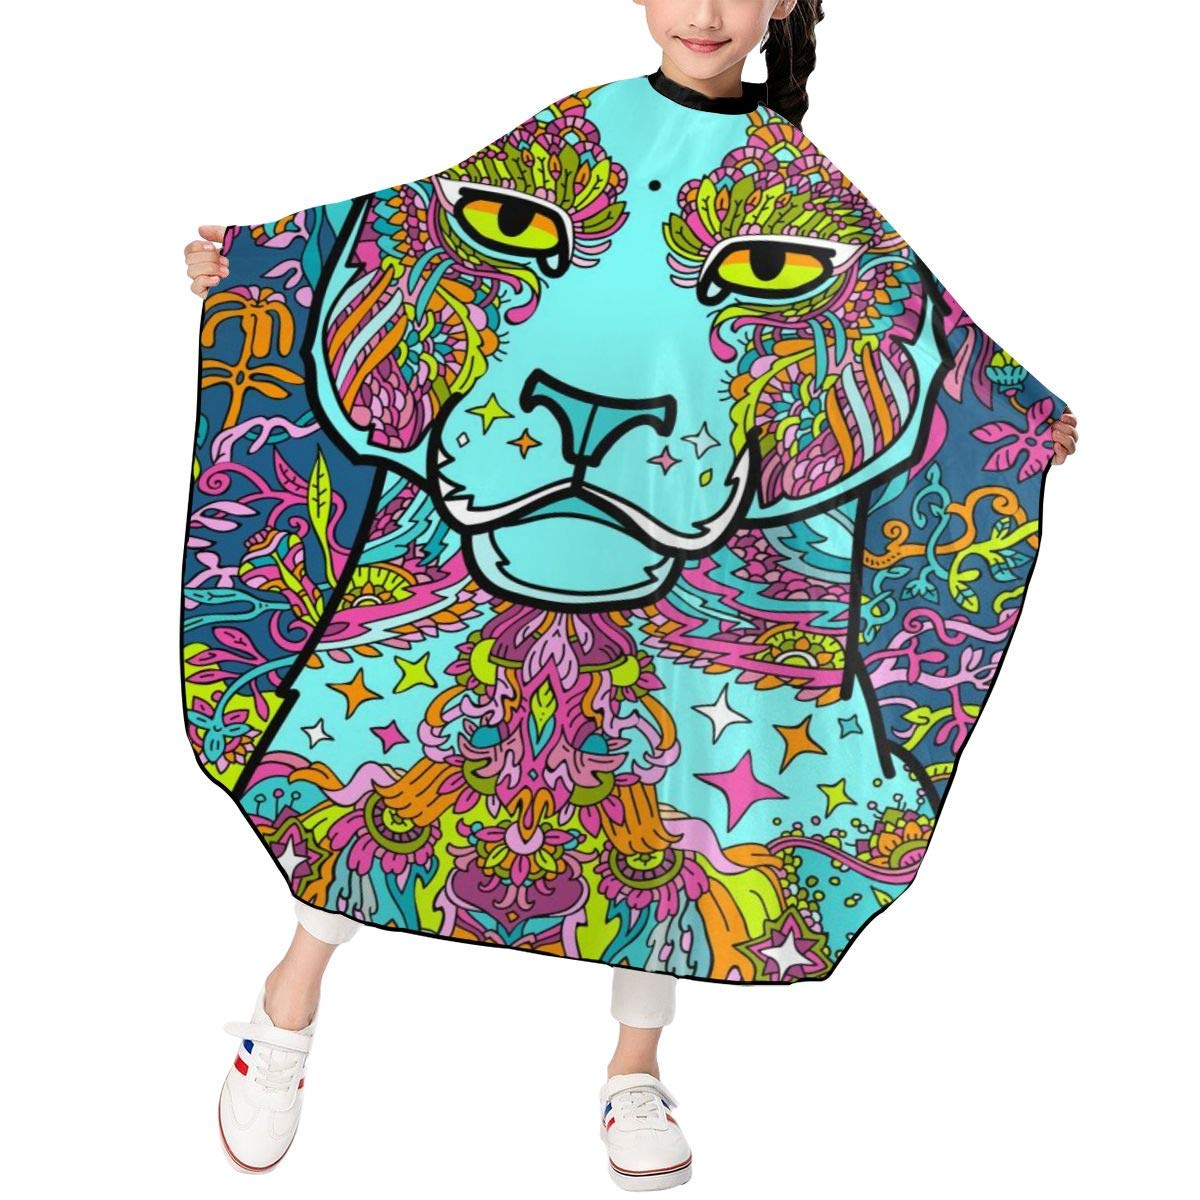 Barber Cape for Kids - Professional Hair Salon Cape with Adjustable Snap Closure Waterproof Hair Cutting Cape for Salon and Home 47 x 39 inches Colorful Jaguar Tiger